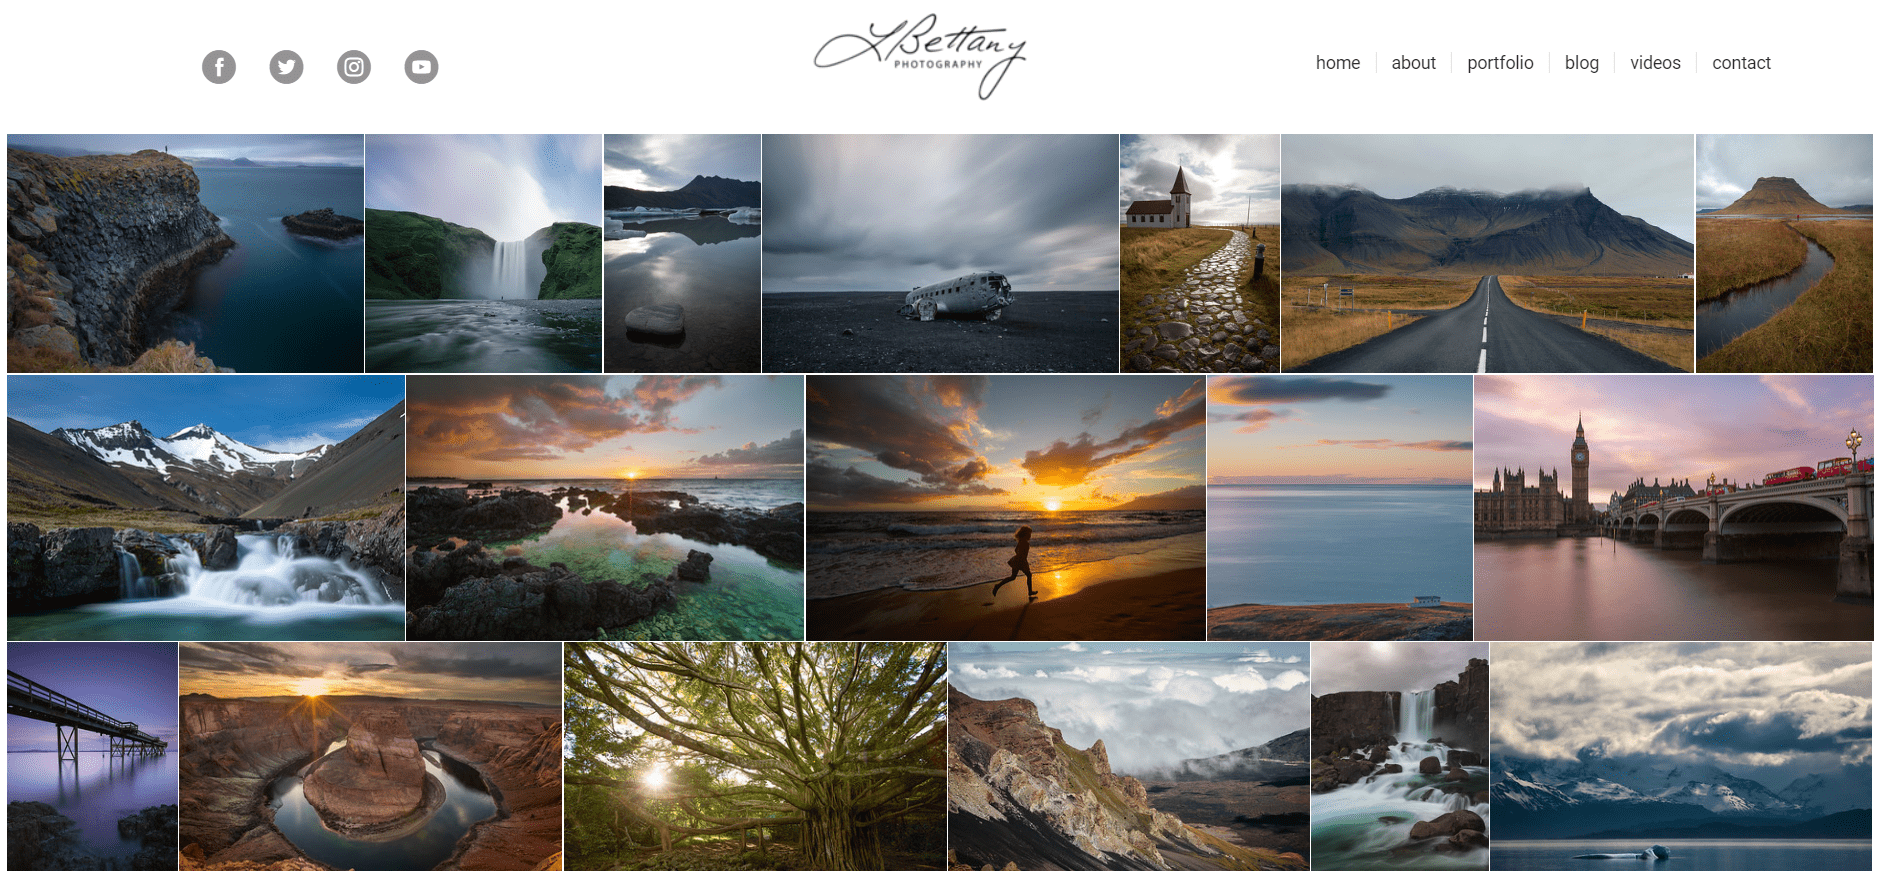 you can create a similar photograher website